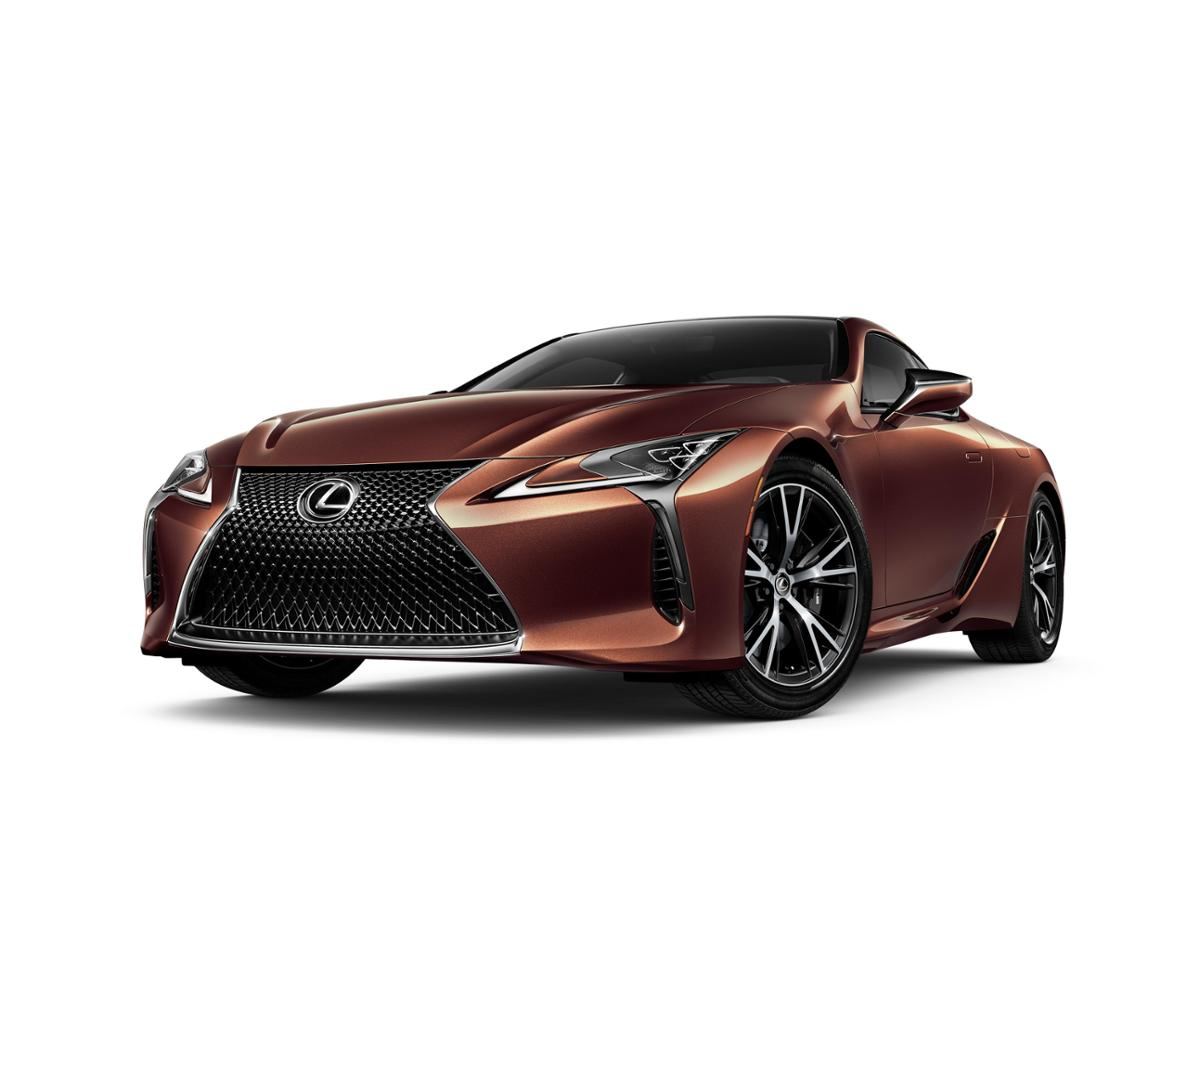 2018 Lexus LC 500 Vehicle Photo in Modesto, CA 95356